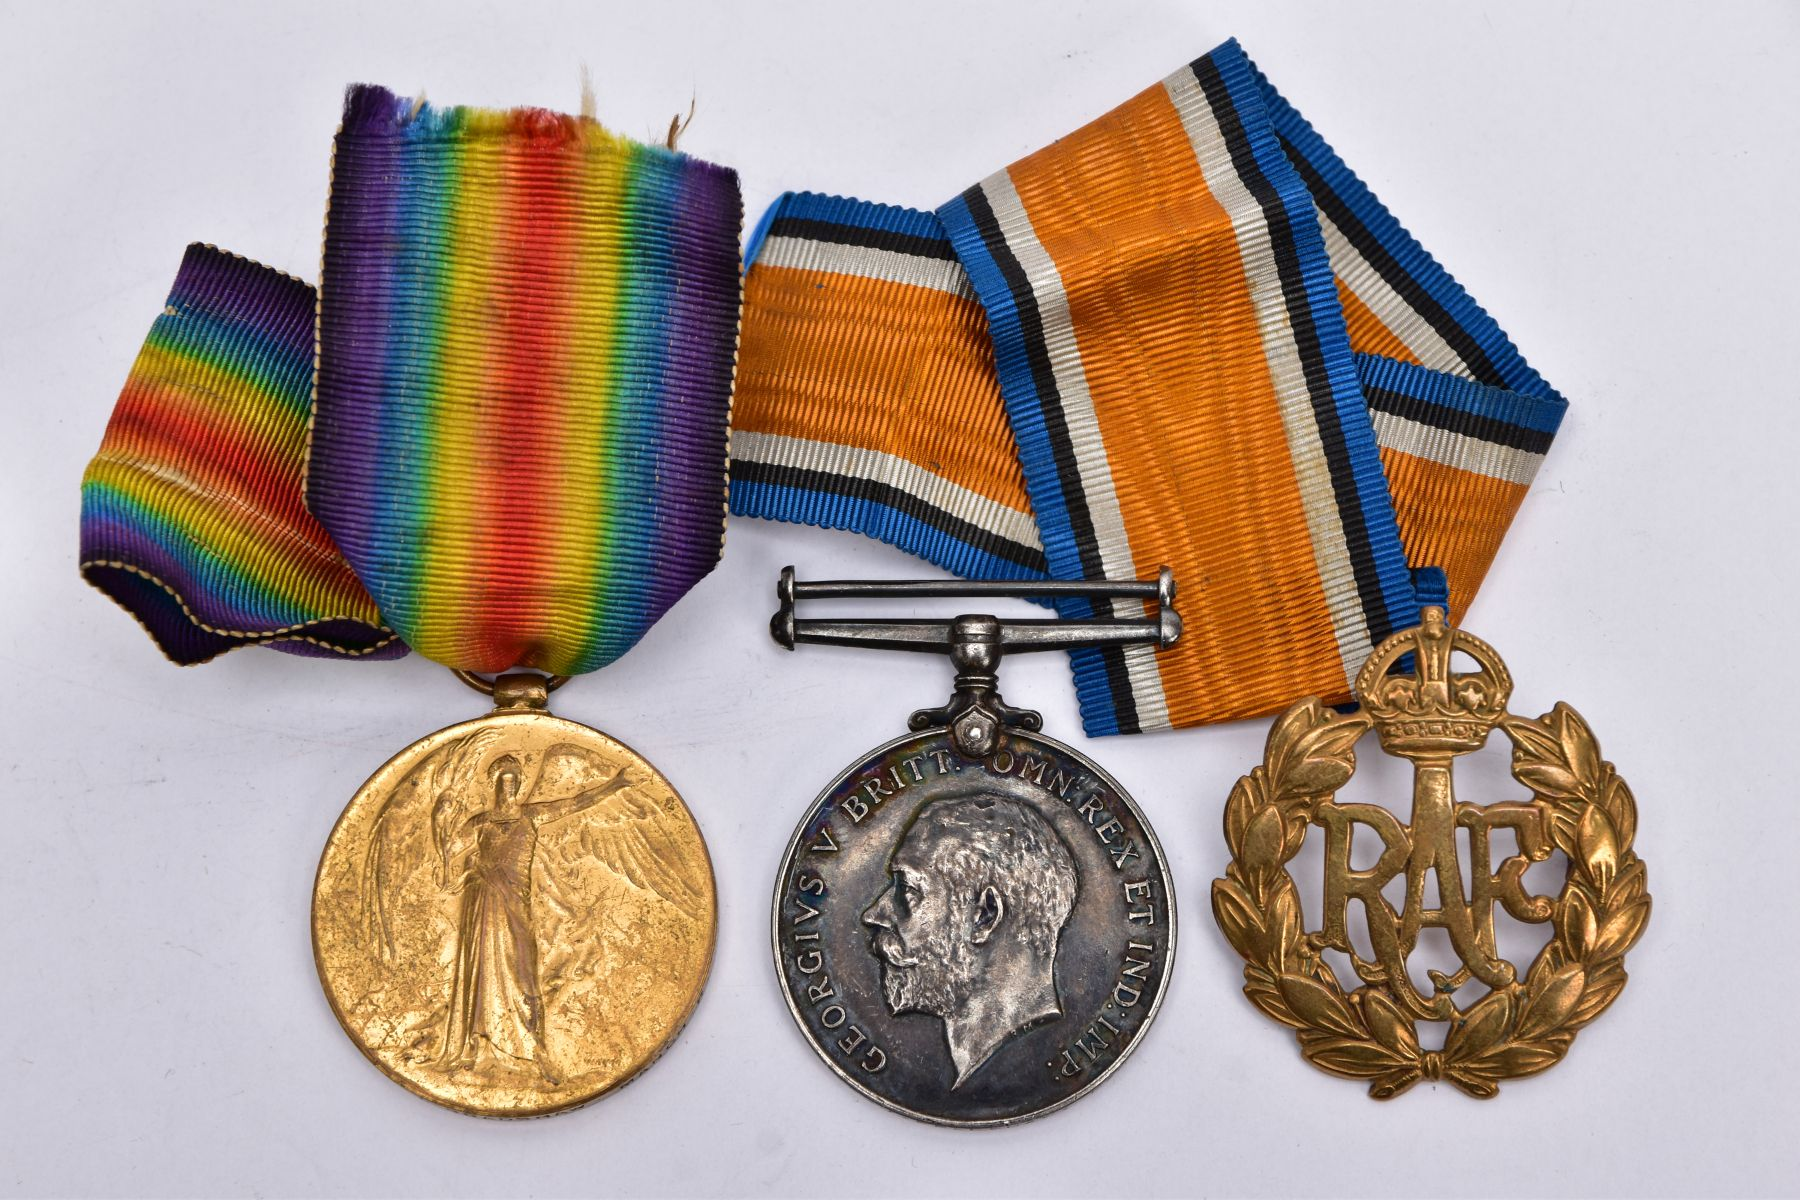 A BRITISH WAR AND VICTORY MEDAL PAIR, named to 21085 Pte J.Bradshaw, Manchester Regiment, together